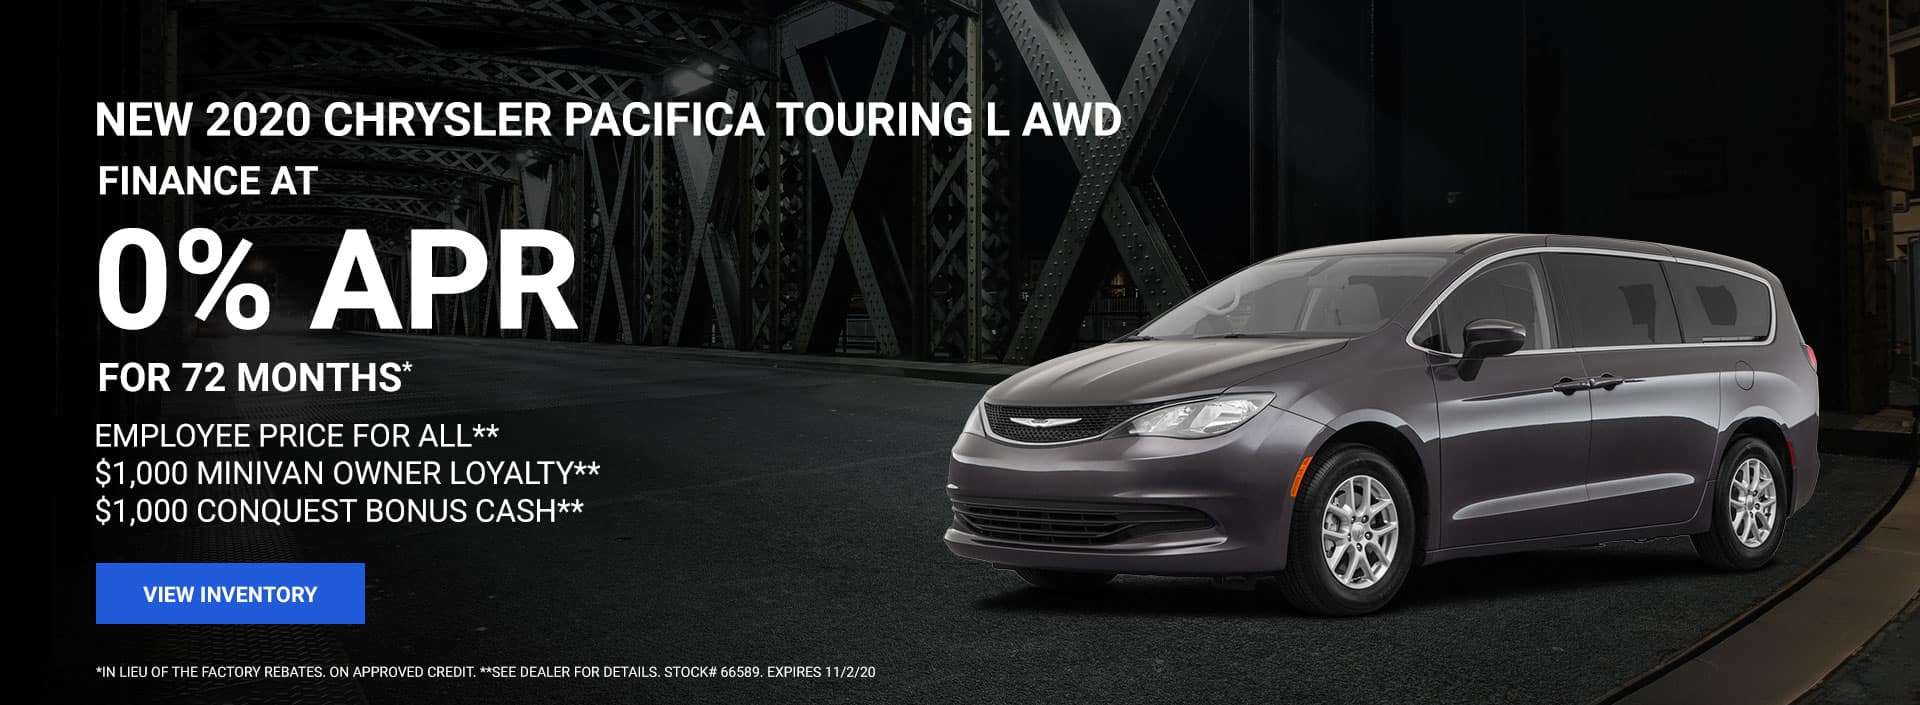 2020 Chrysler Pacifica Touring L AWD